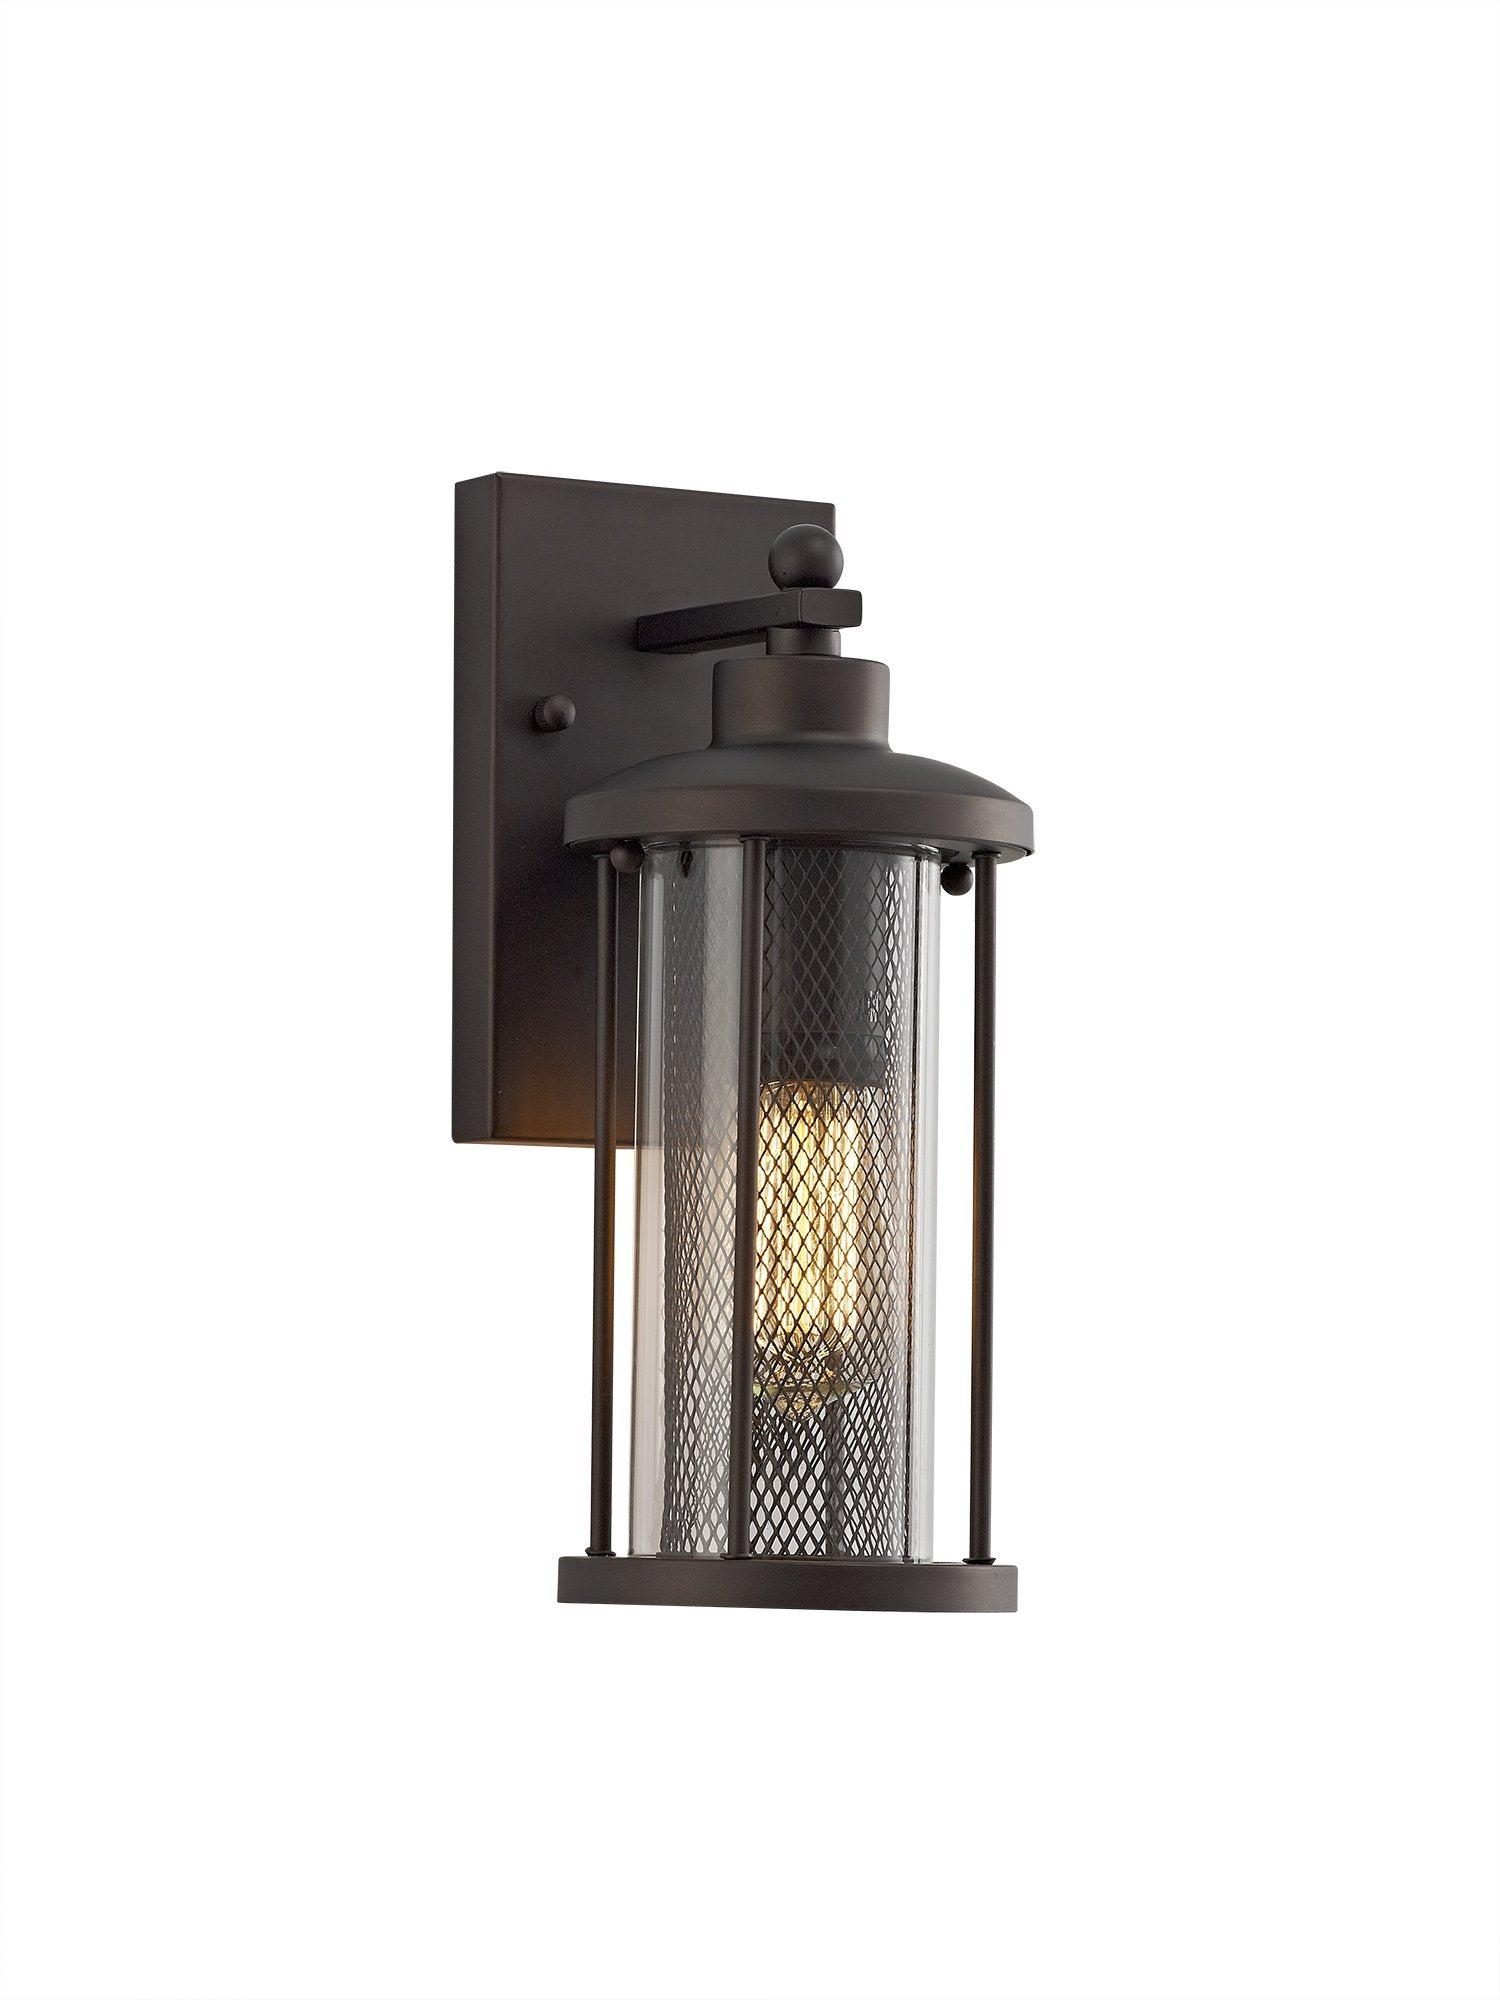 Miner outdoor wall lamp